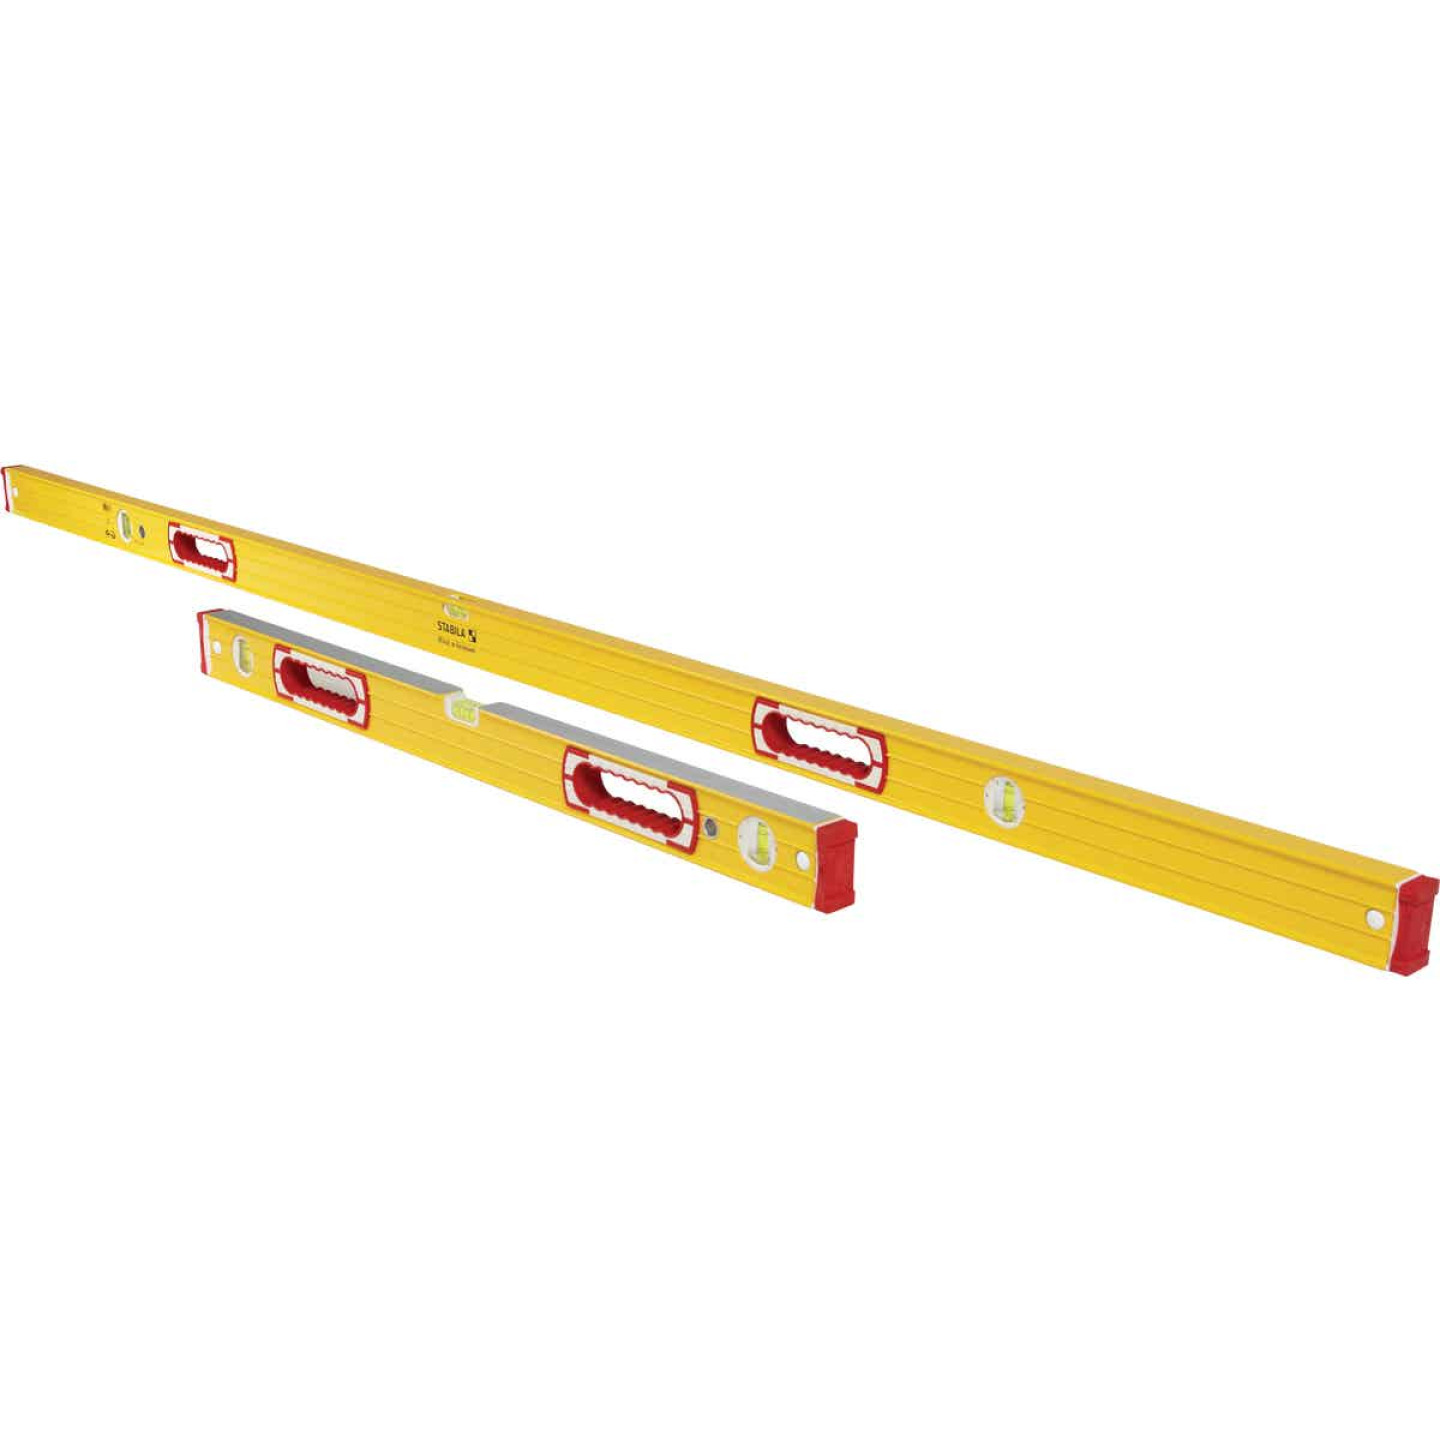 Stabila 78 In. Aluminum Jamber Box Level & 24 to 40 In. Extendable Level Set Image 2